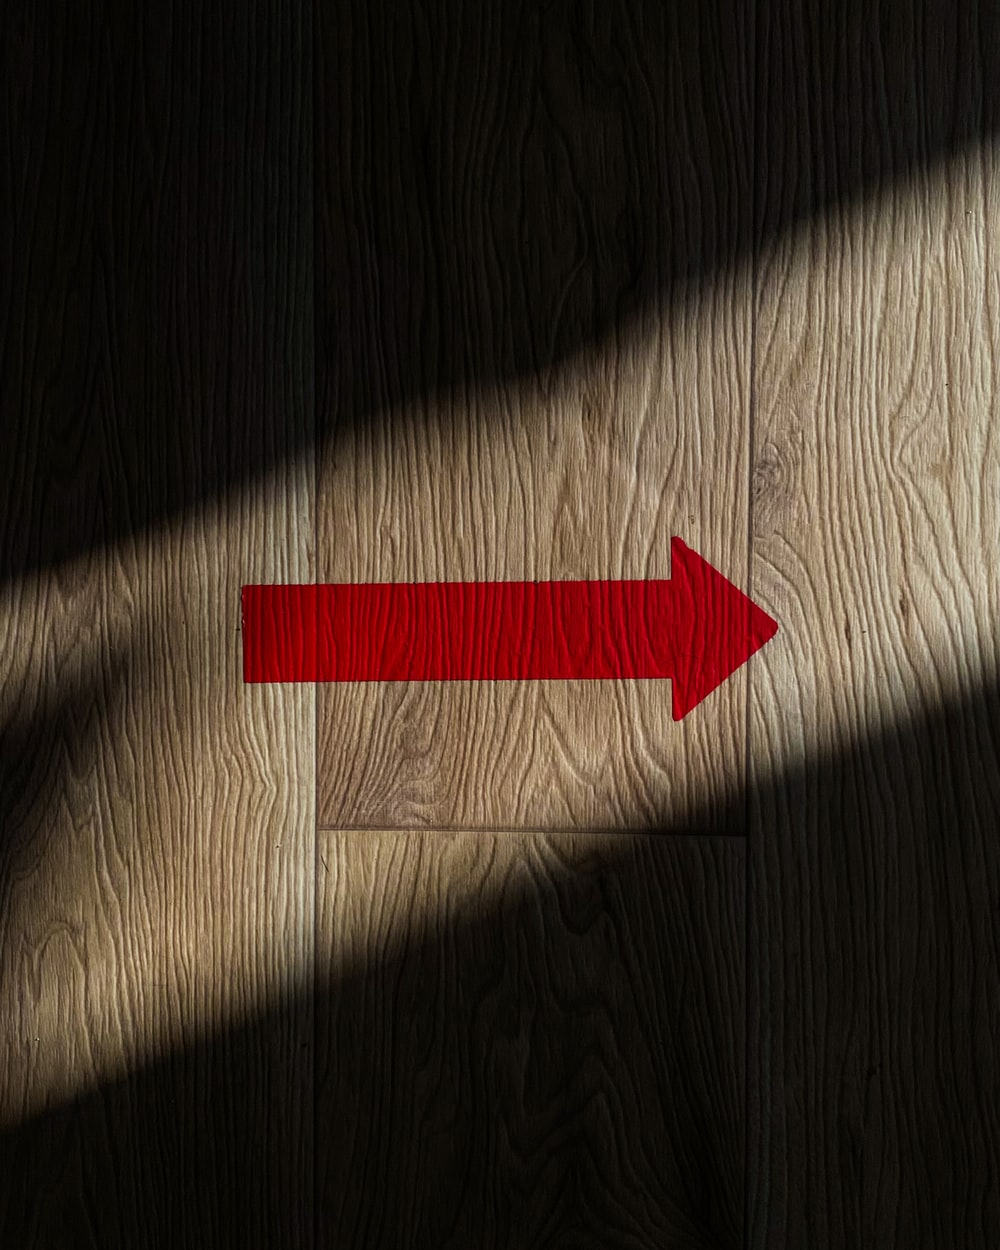 red and white x sign